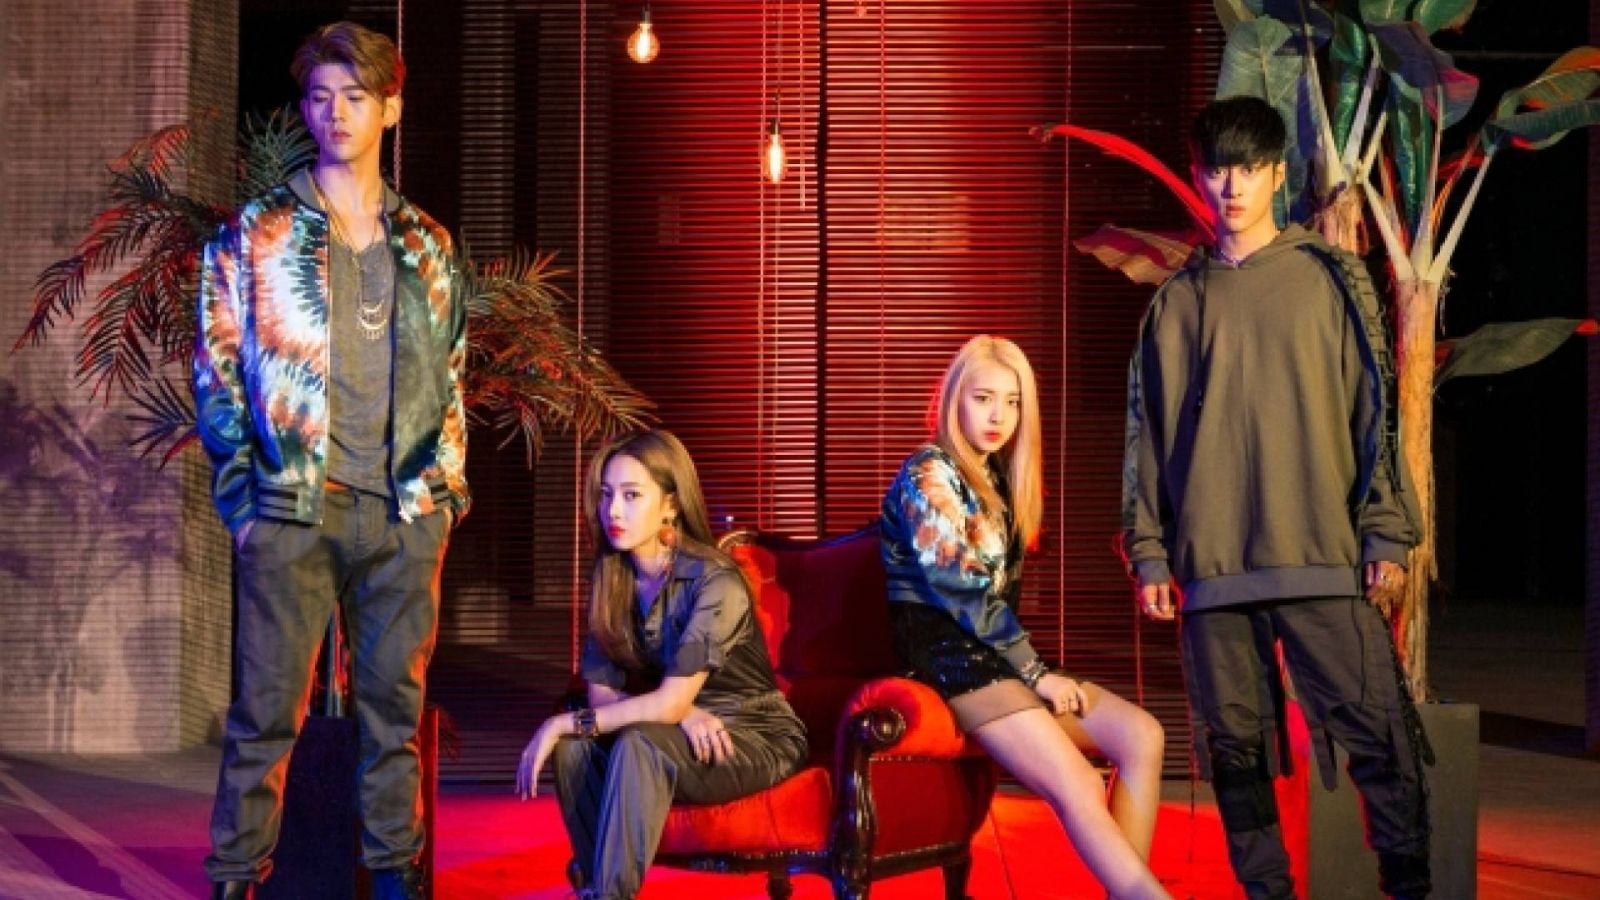 KARD to Release Their First Mini-Album And Tour Europe © KARD. All Rights Reserved.